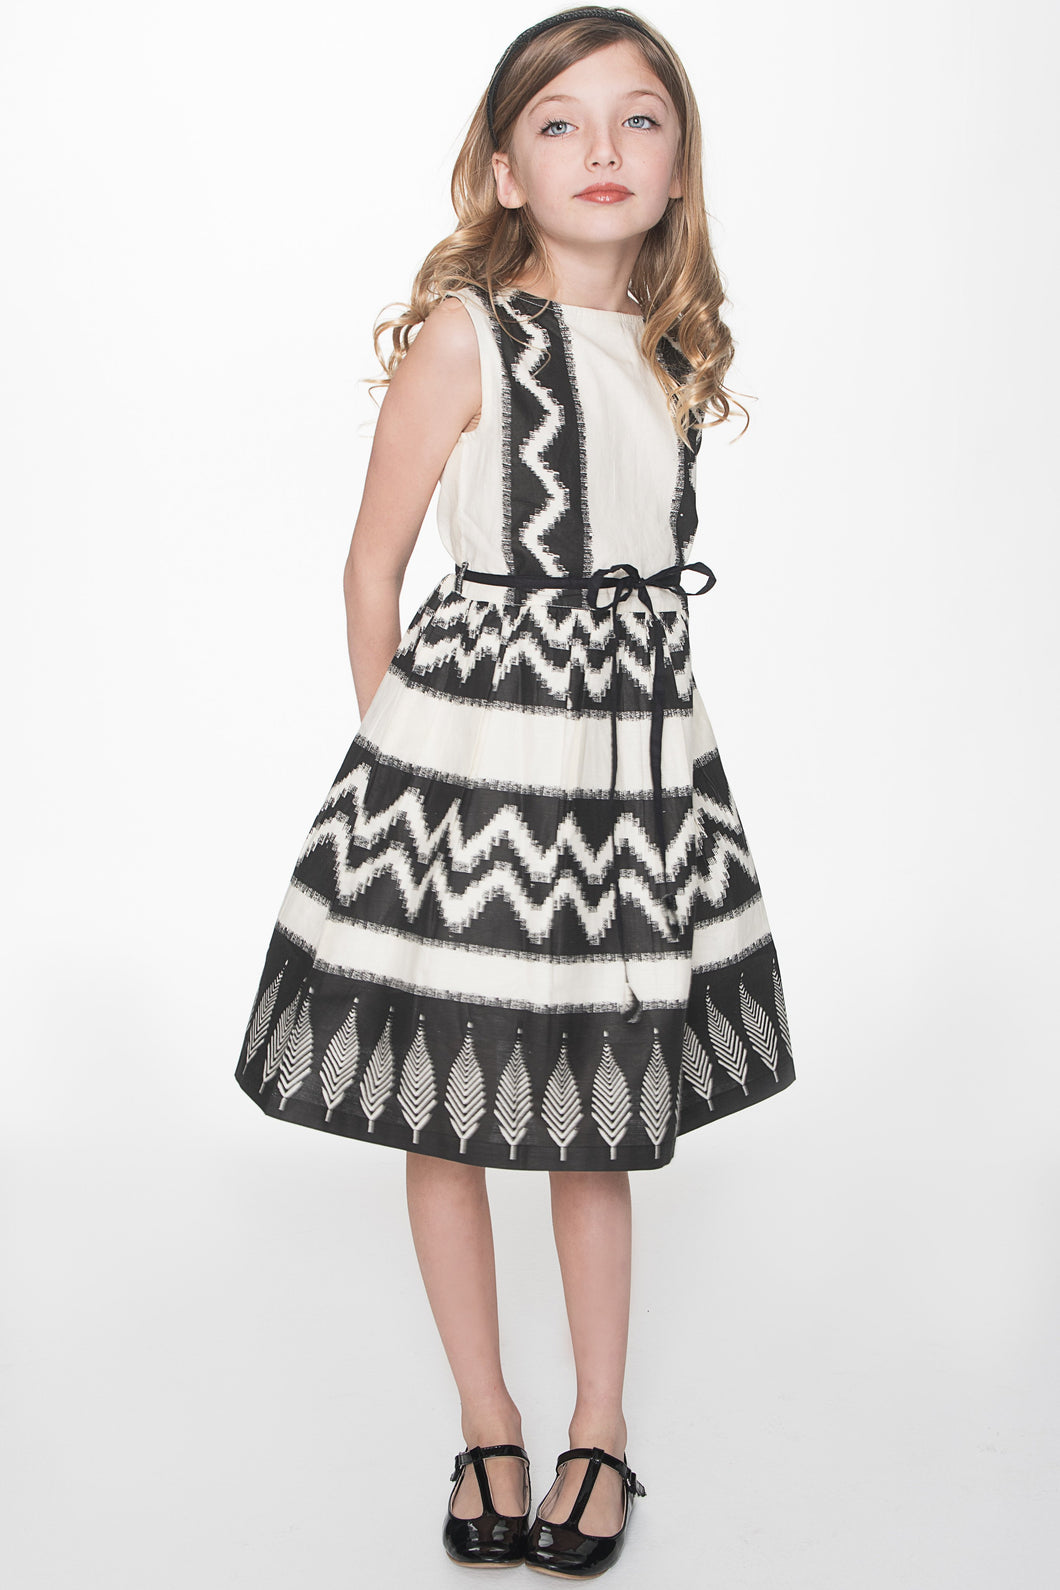 Black Tribal Print Dress - Kids Clothing, Dress - Girls Dress, Yo Baby Online - Yo Baby